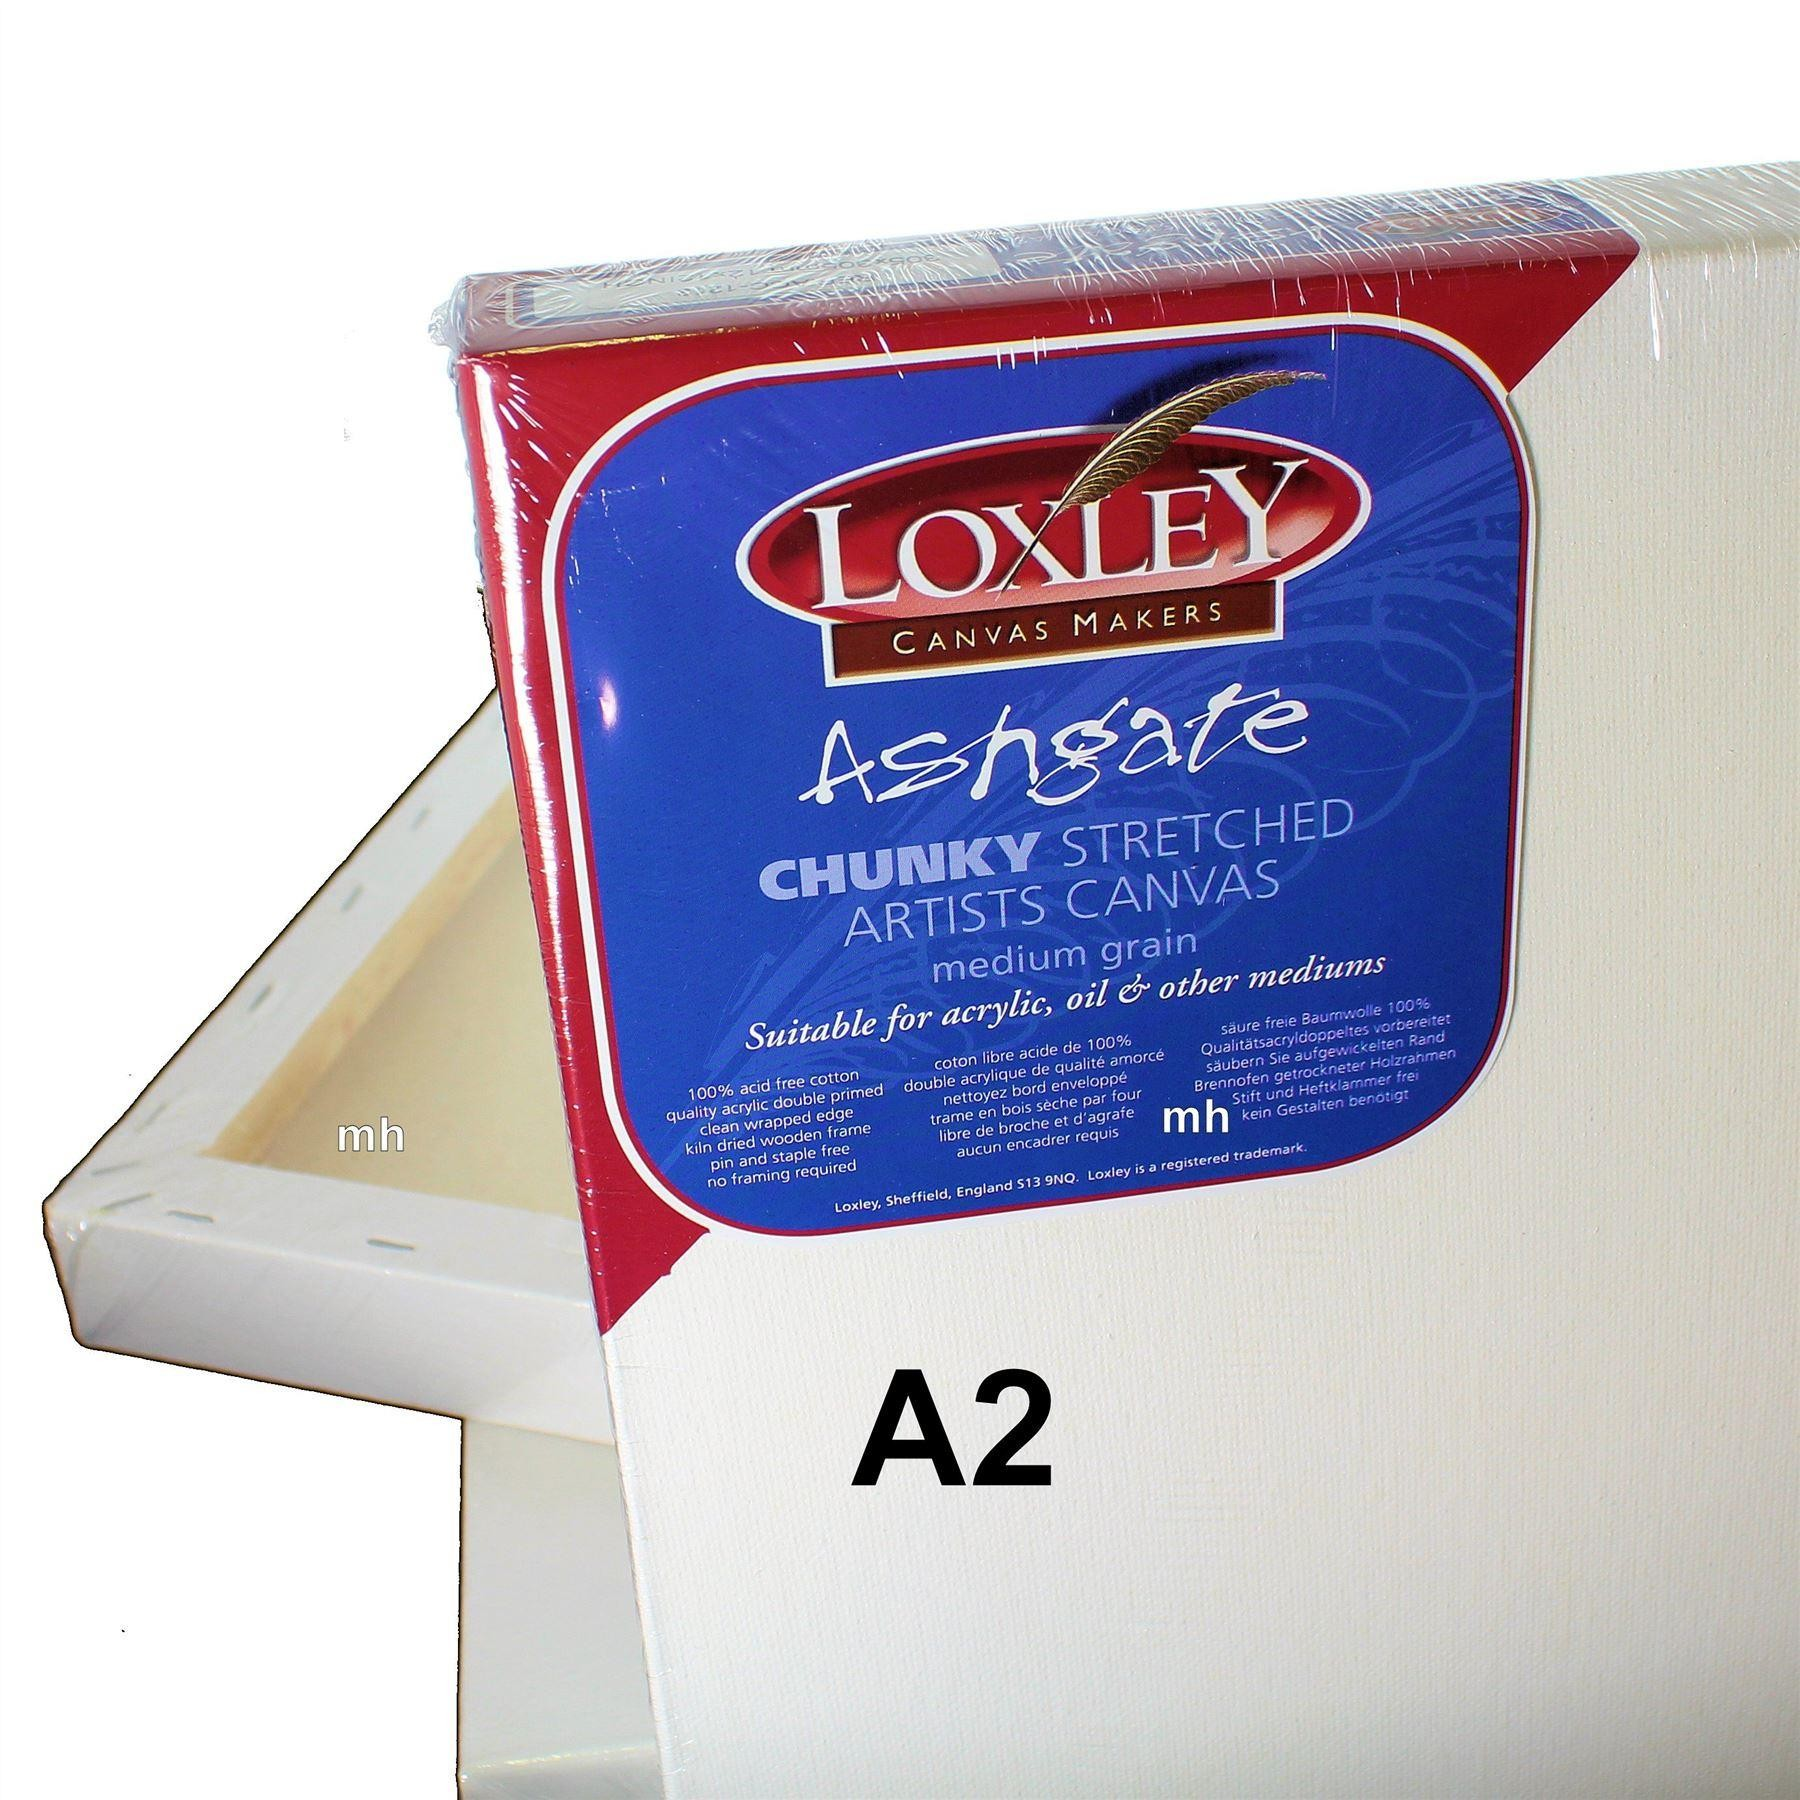 Loxley Ashgate Chunky canvas, single size boxes of stretched canvas